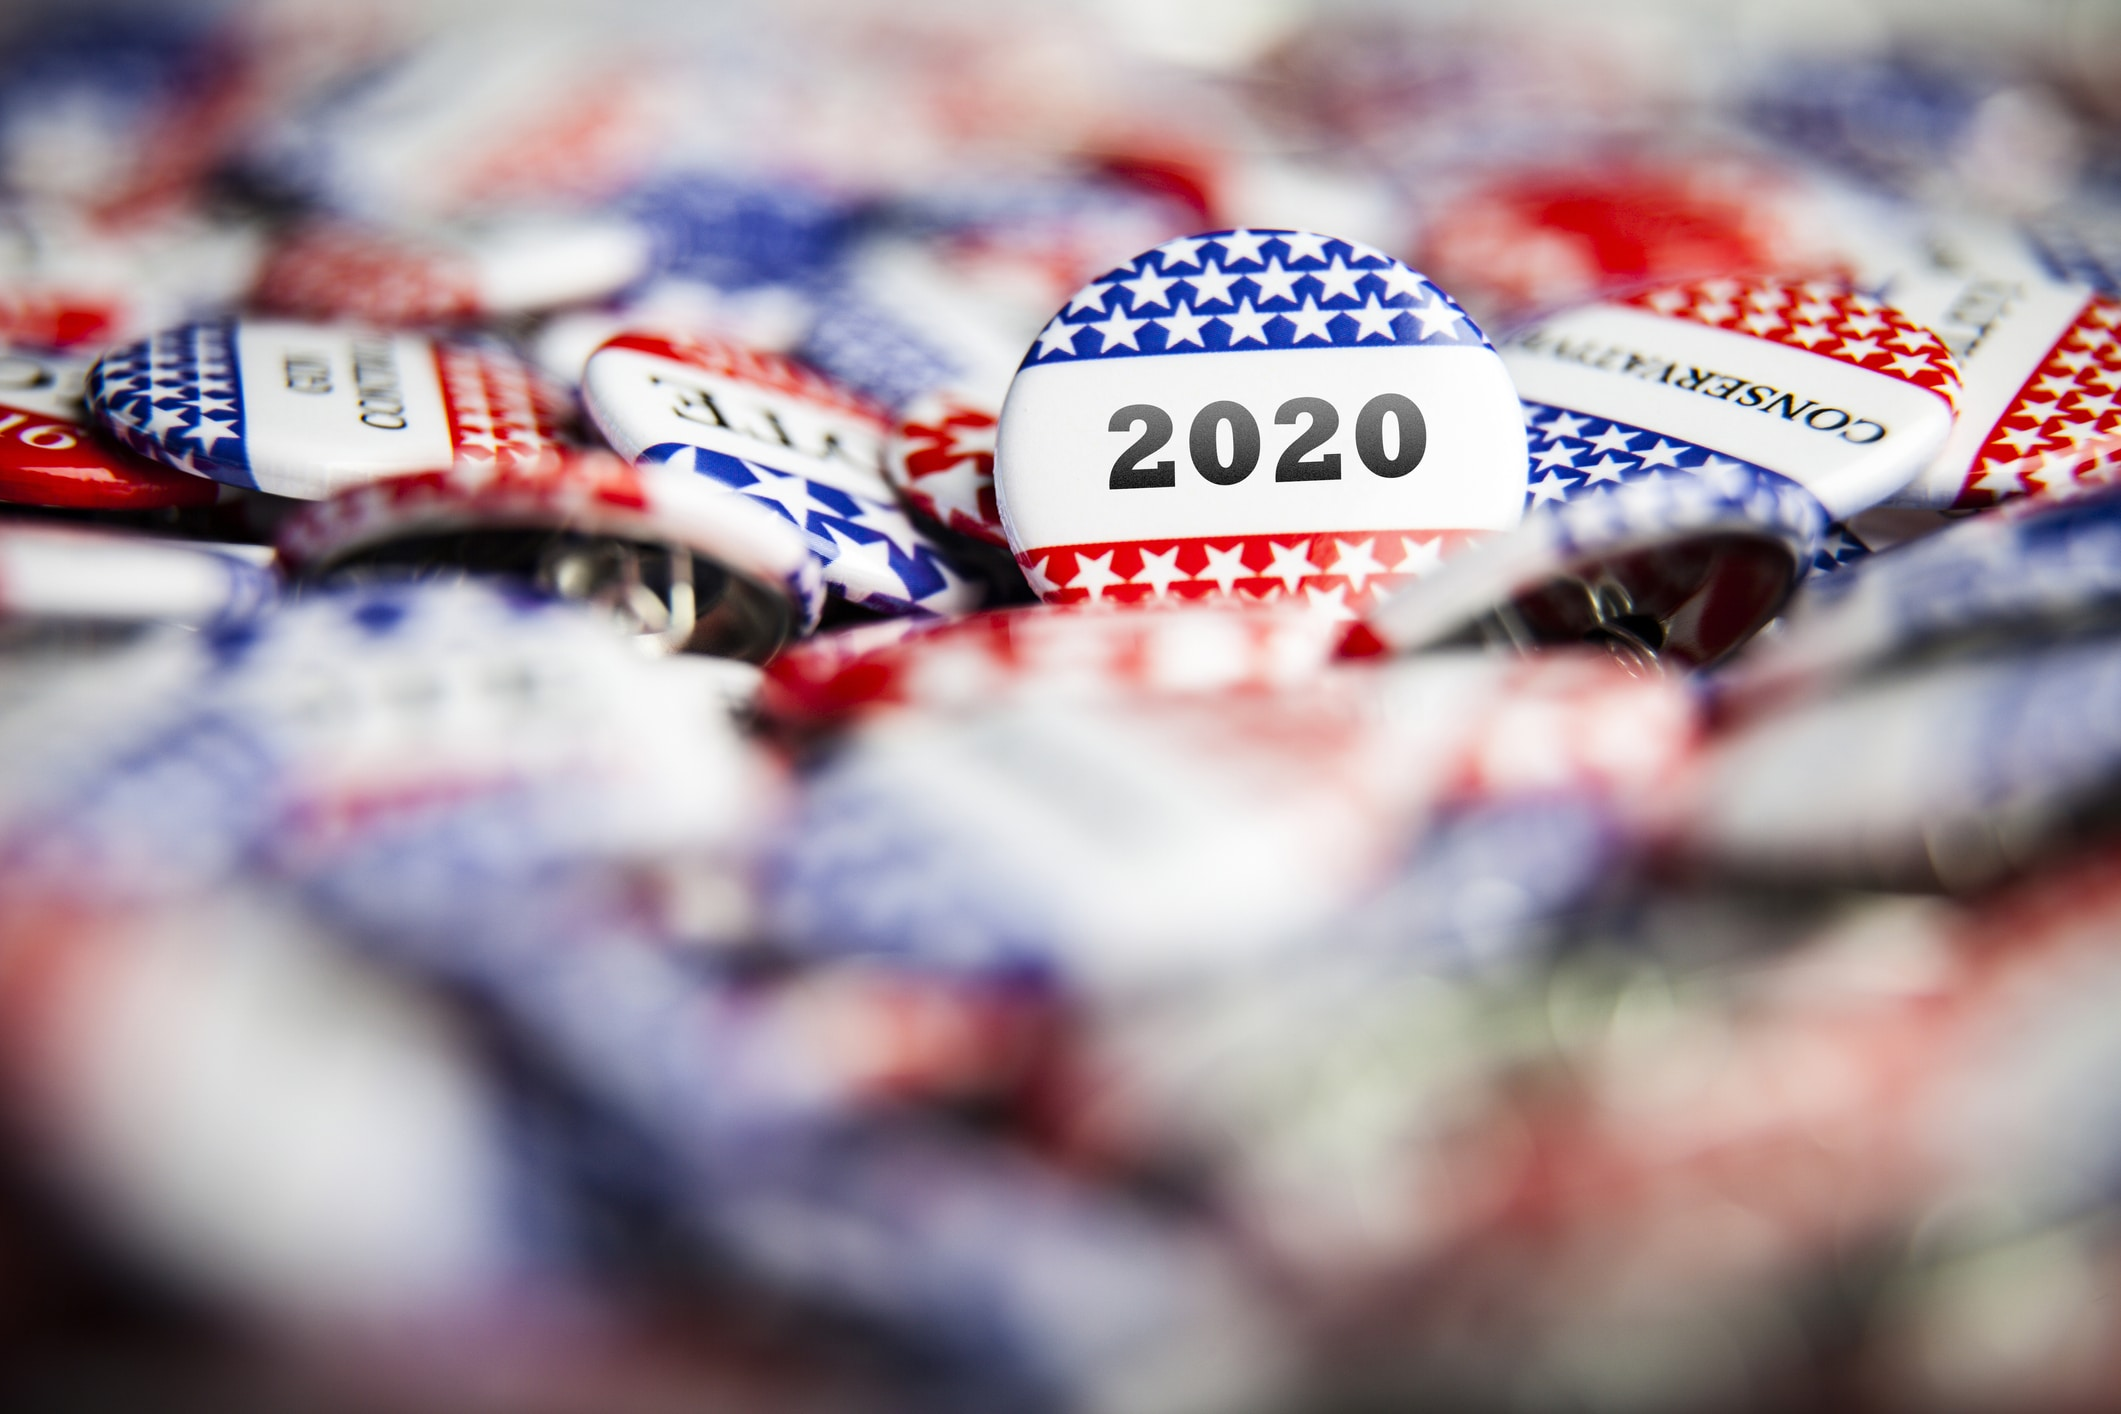 Closeup of election vote button with text that says 2020